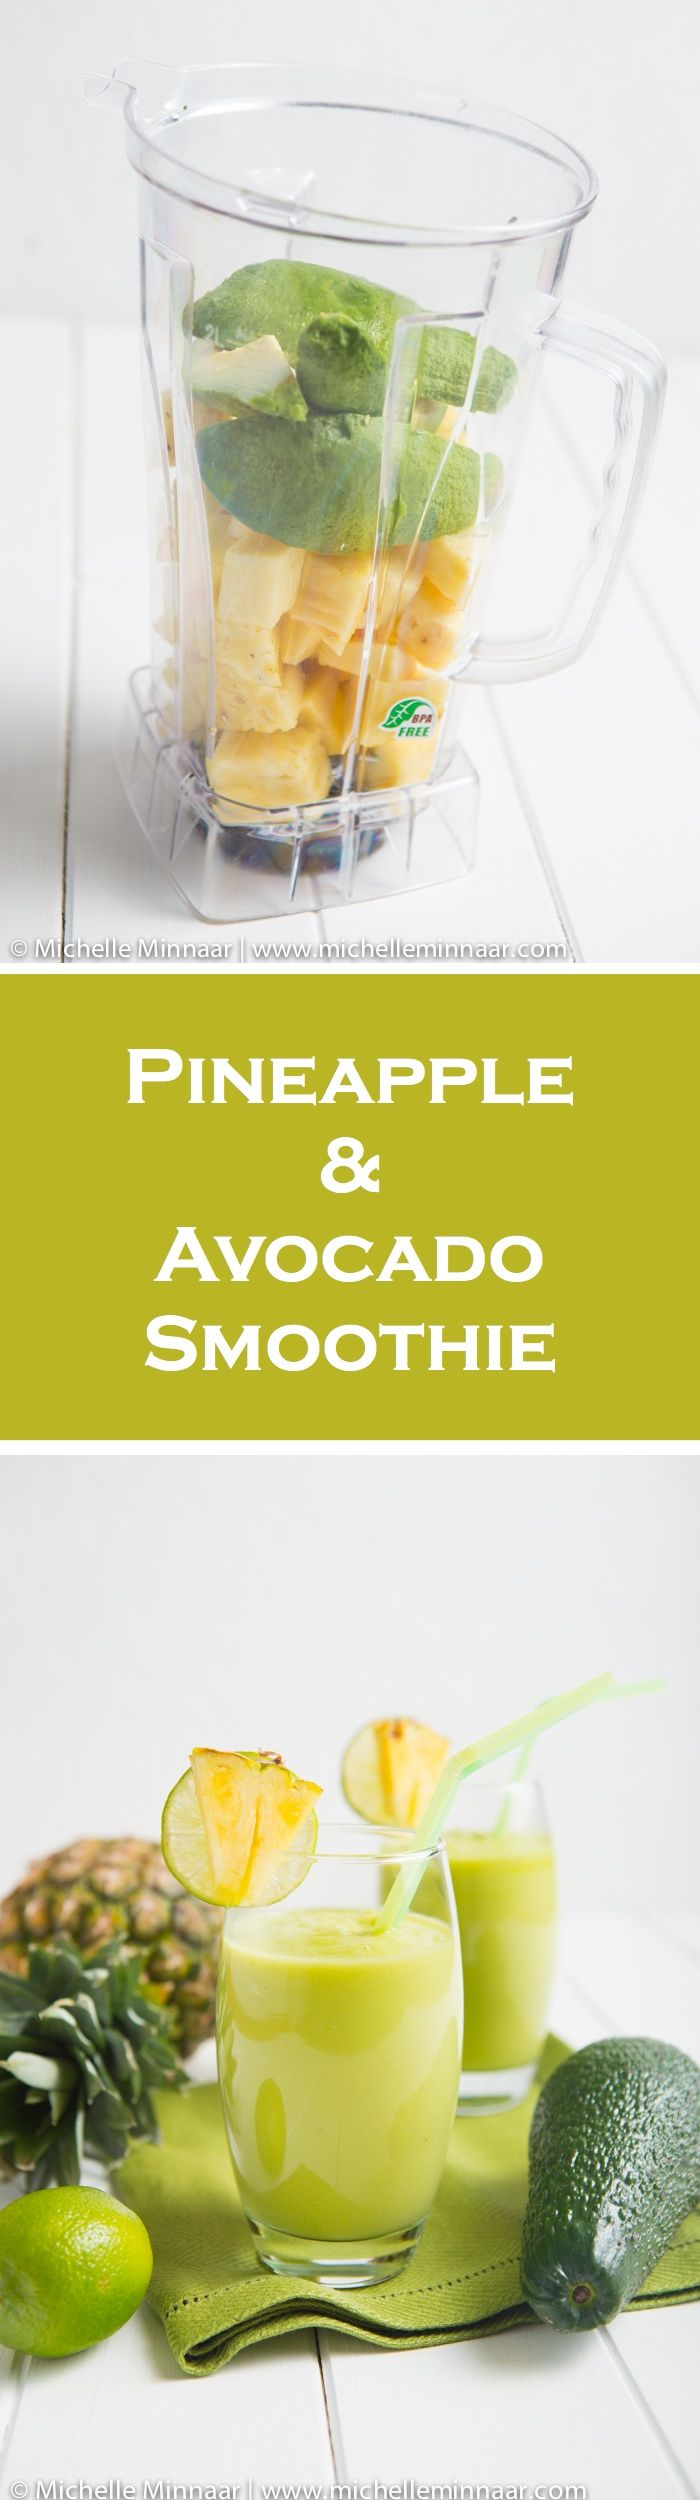 The perfect breakfast smoothie for carnivores and vegans alike.